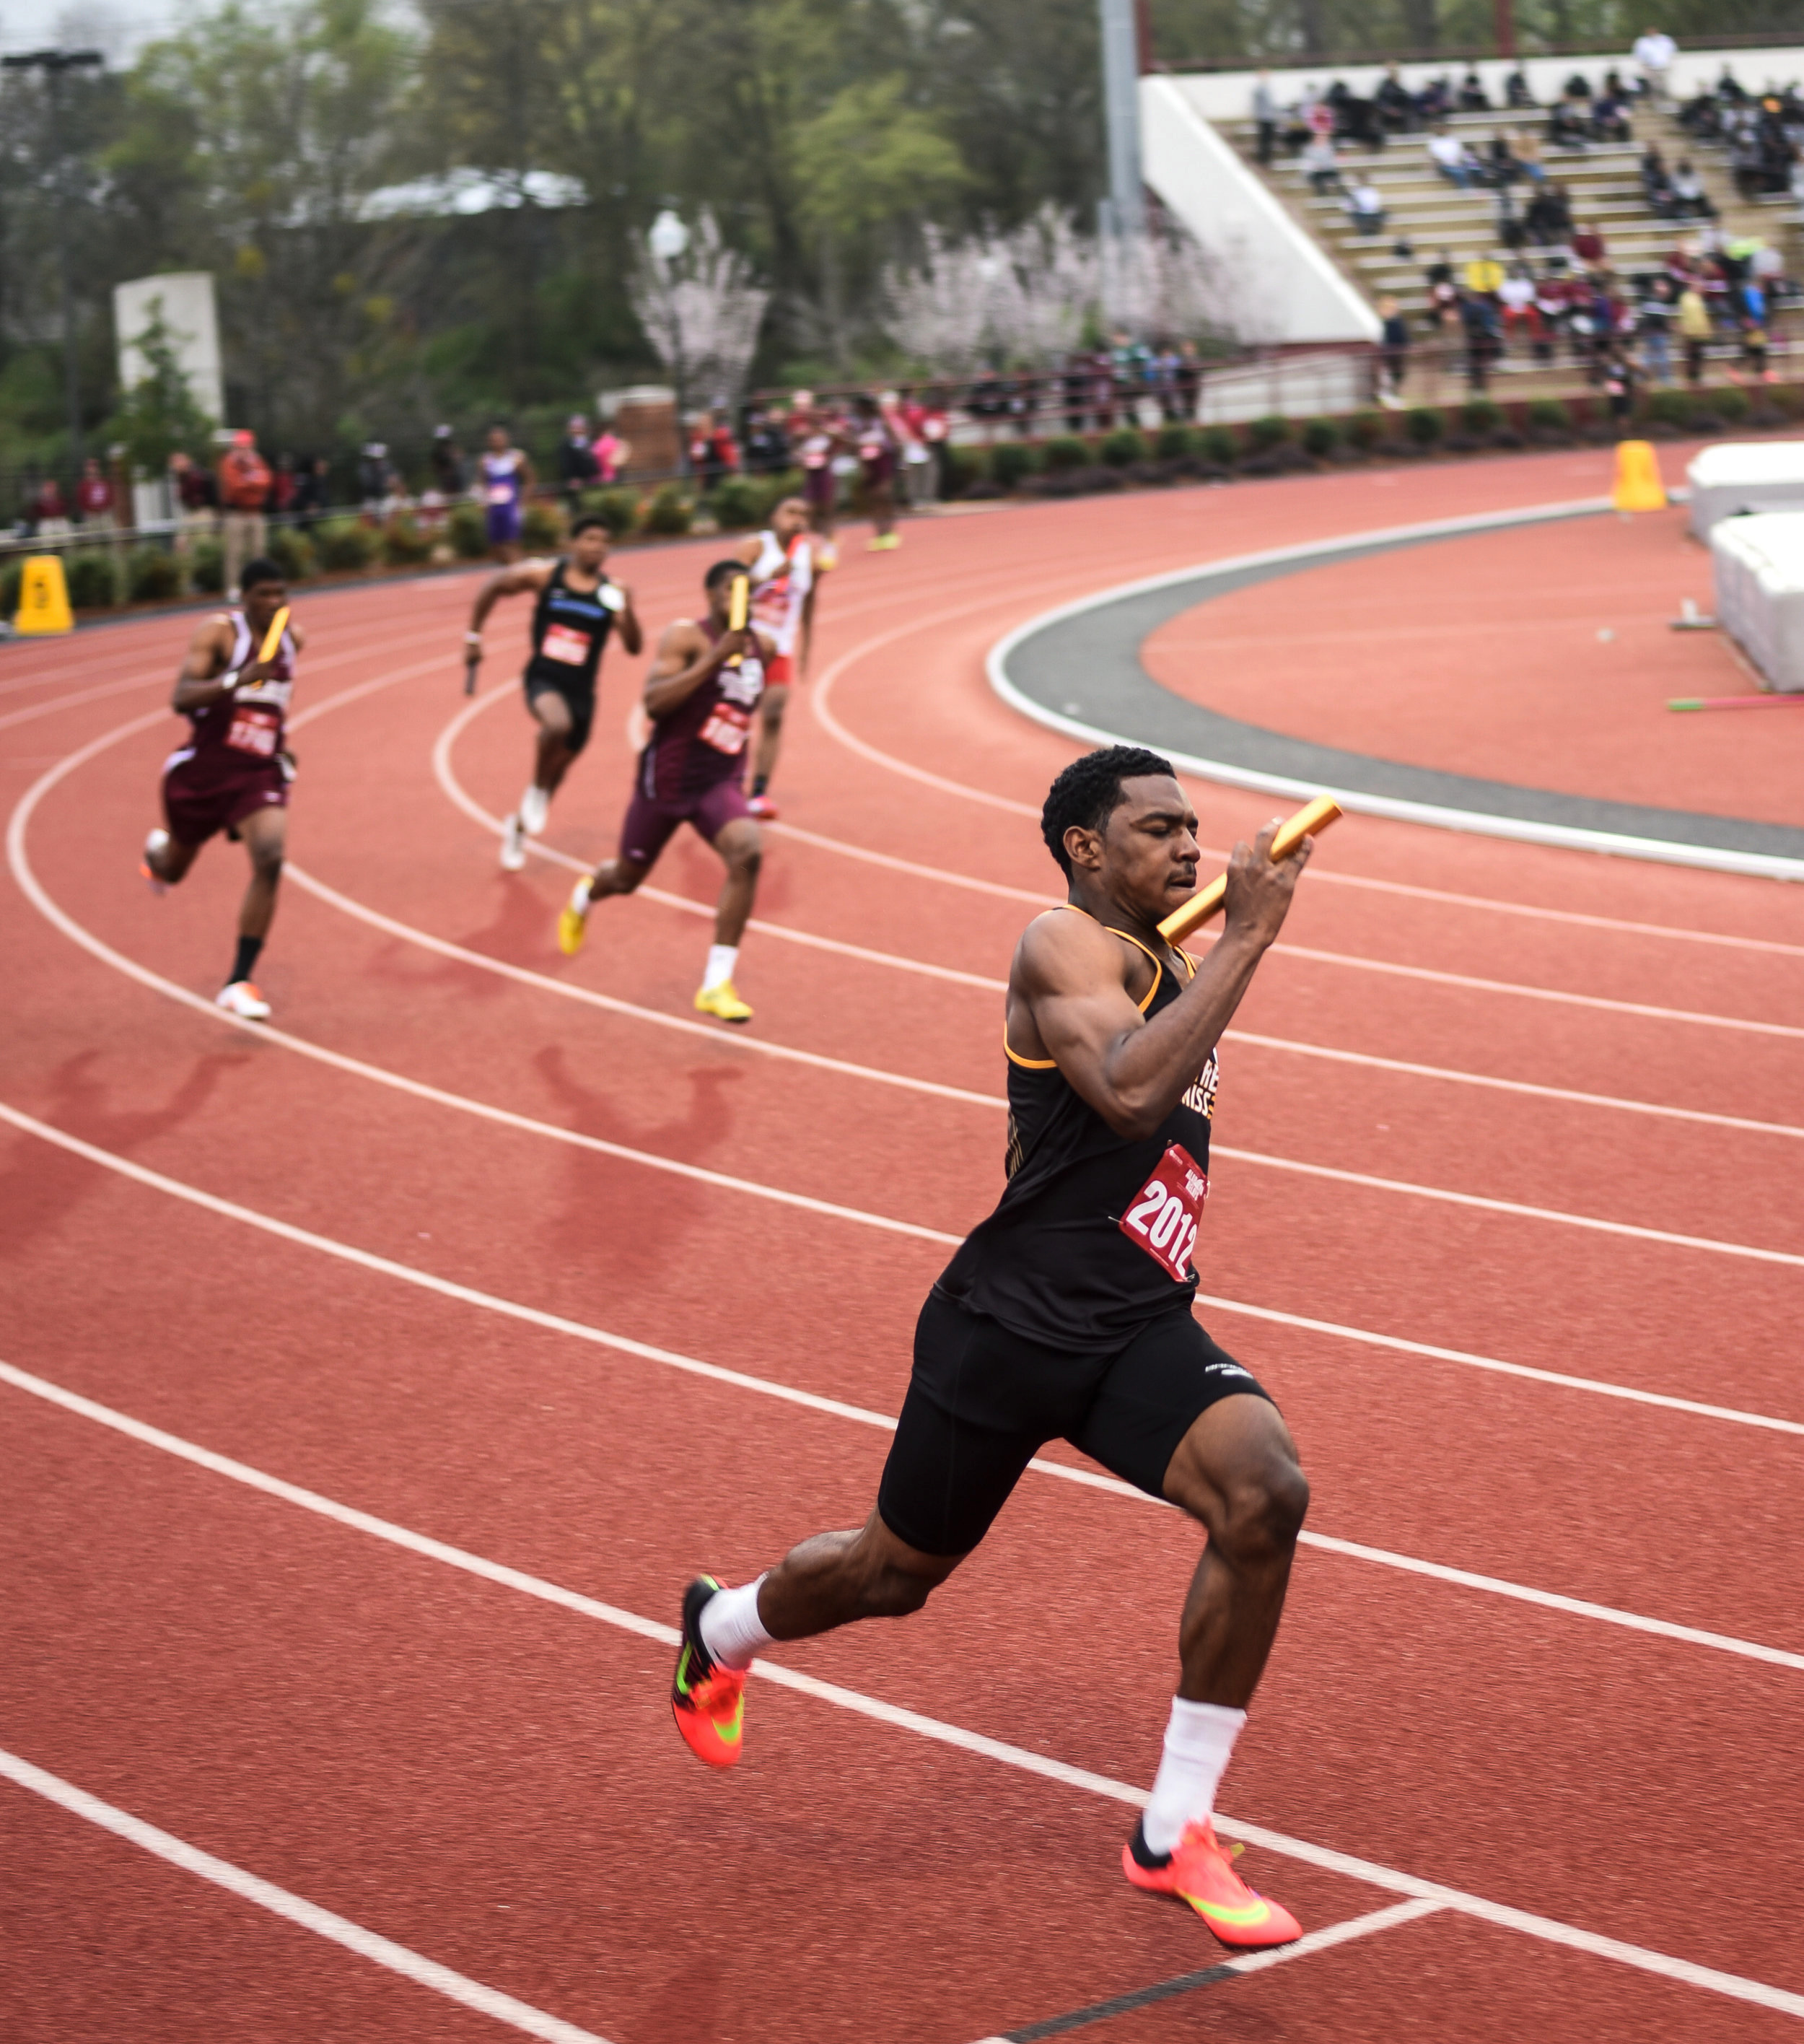 Southern Miss' Cory Miller runs the third leg in the Men's 4x200m Relay at the John Mitchell Alabama Relays in Tuscaloosa, Alabama March 20, 2015.. The Southern Miss Mens 4x200m team finished second overall with a time of 1:24.83, which is a school record.